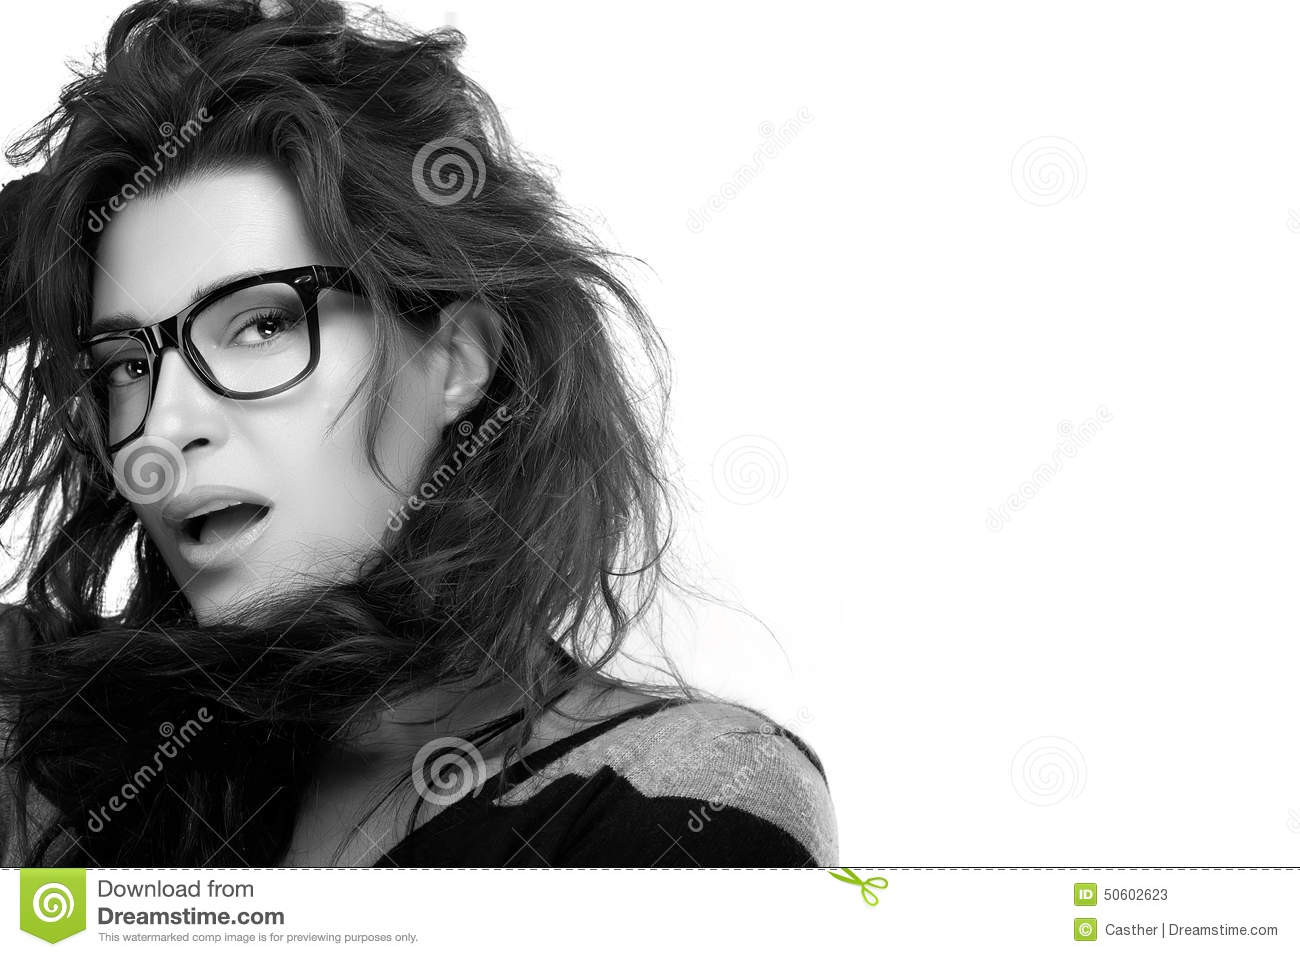 trendy eyewear  Cool Trendy Eyewear. Beauty Fashion Model Girl With Eyeglasses ...